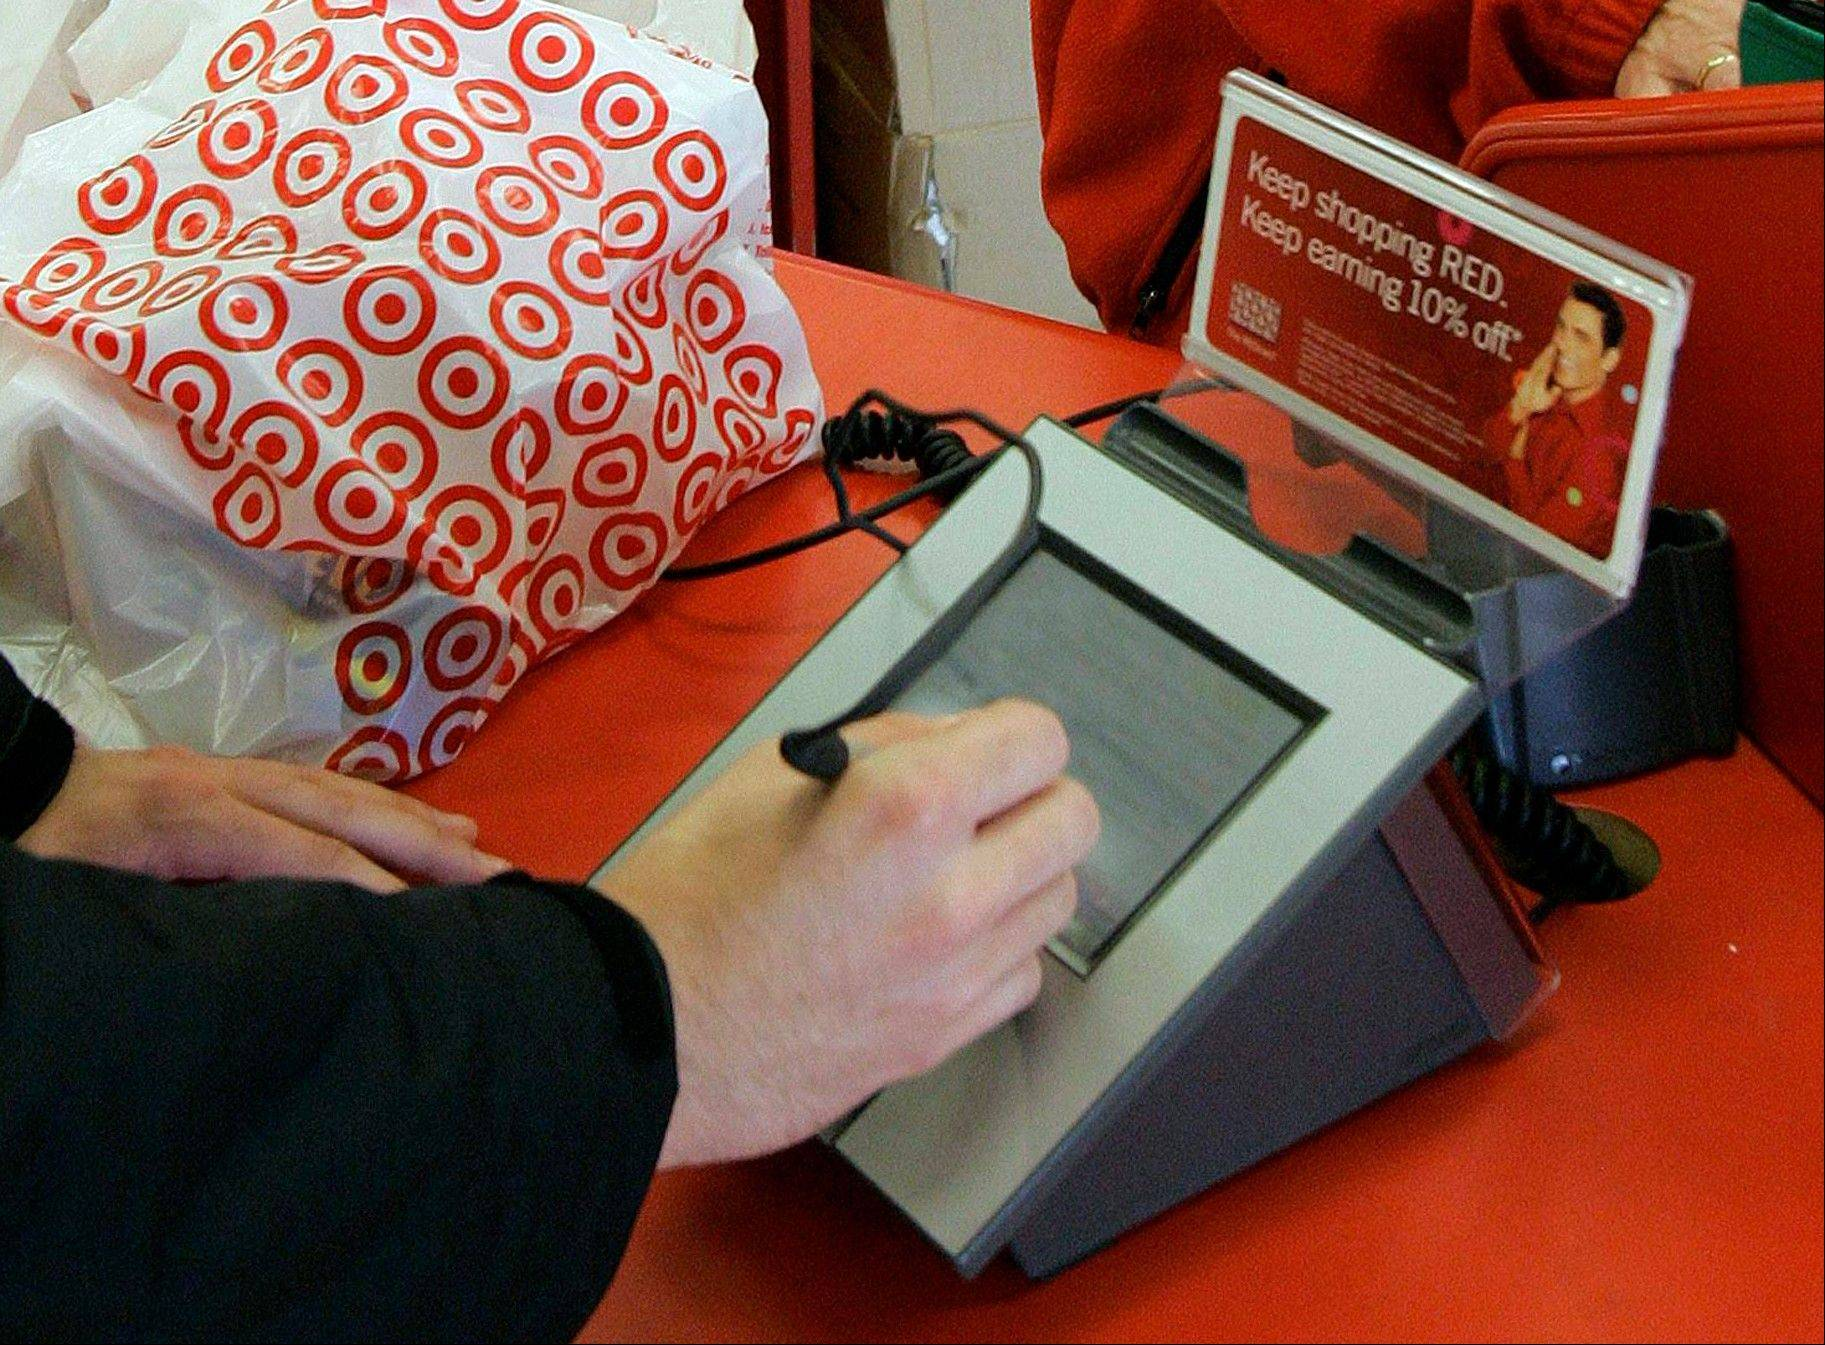 Target says that about 40 million credit and debit card accounts customers may ha